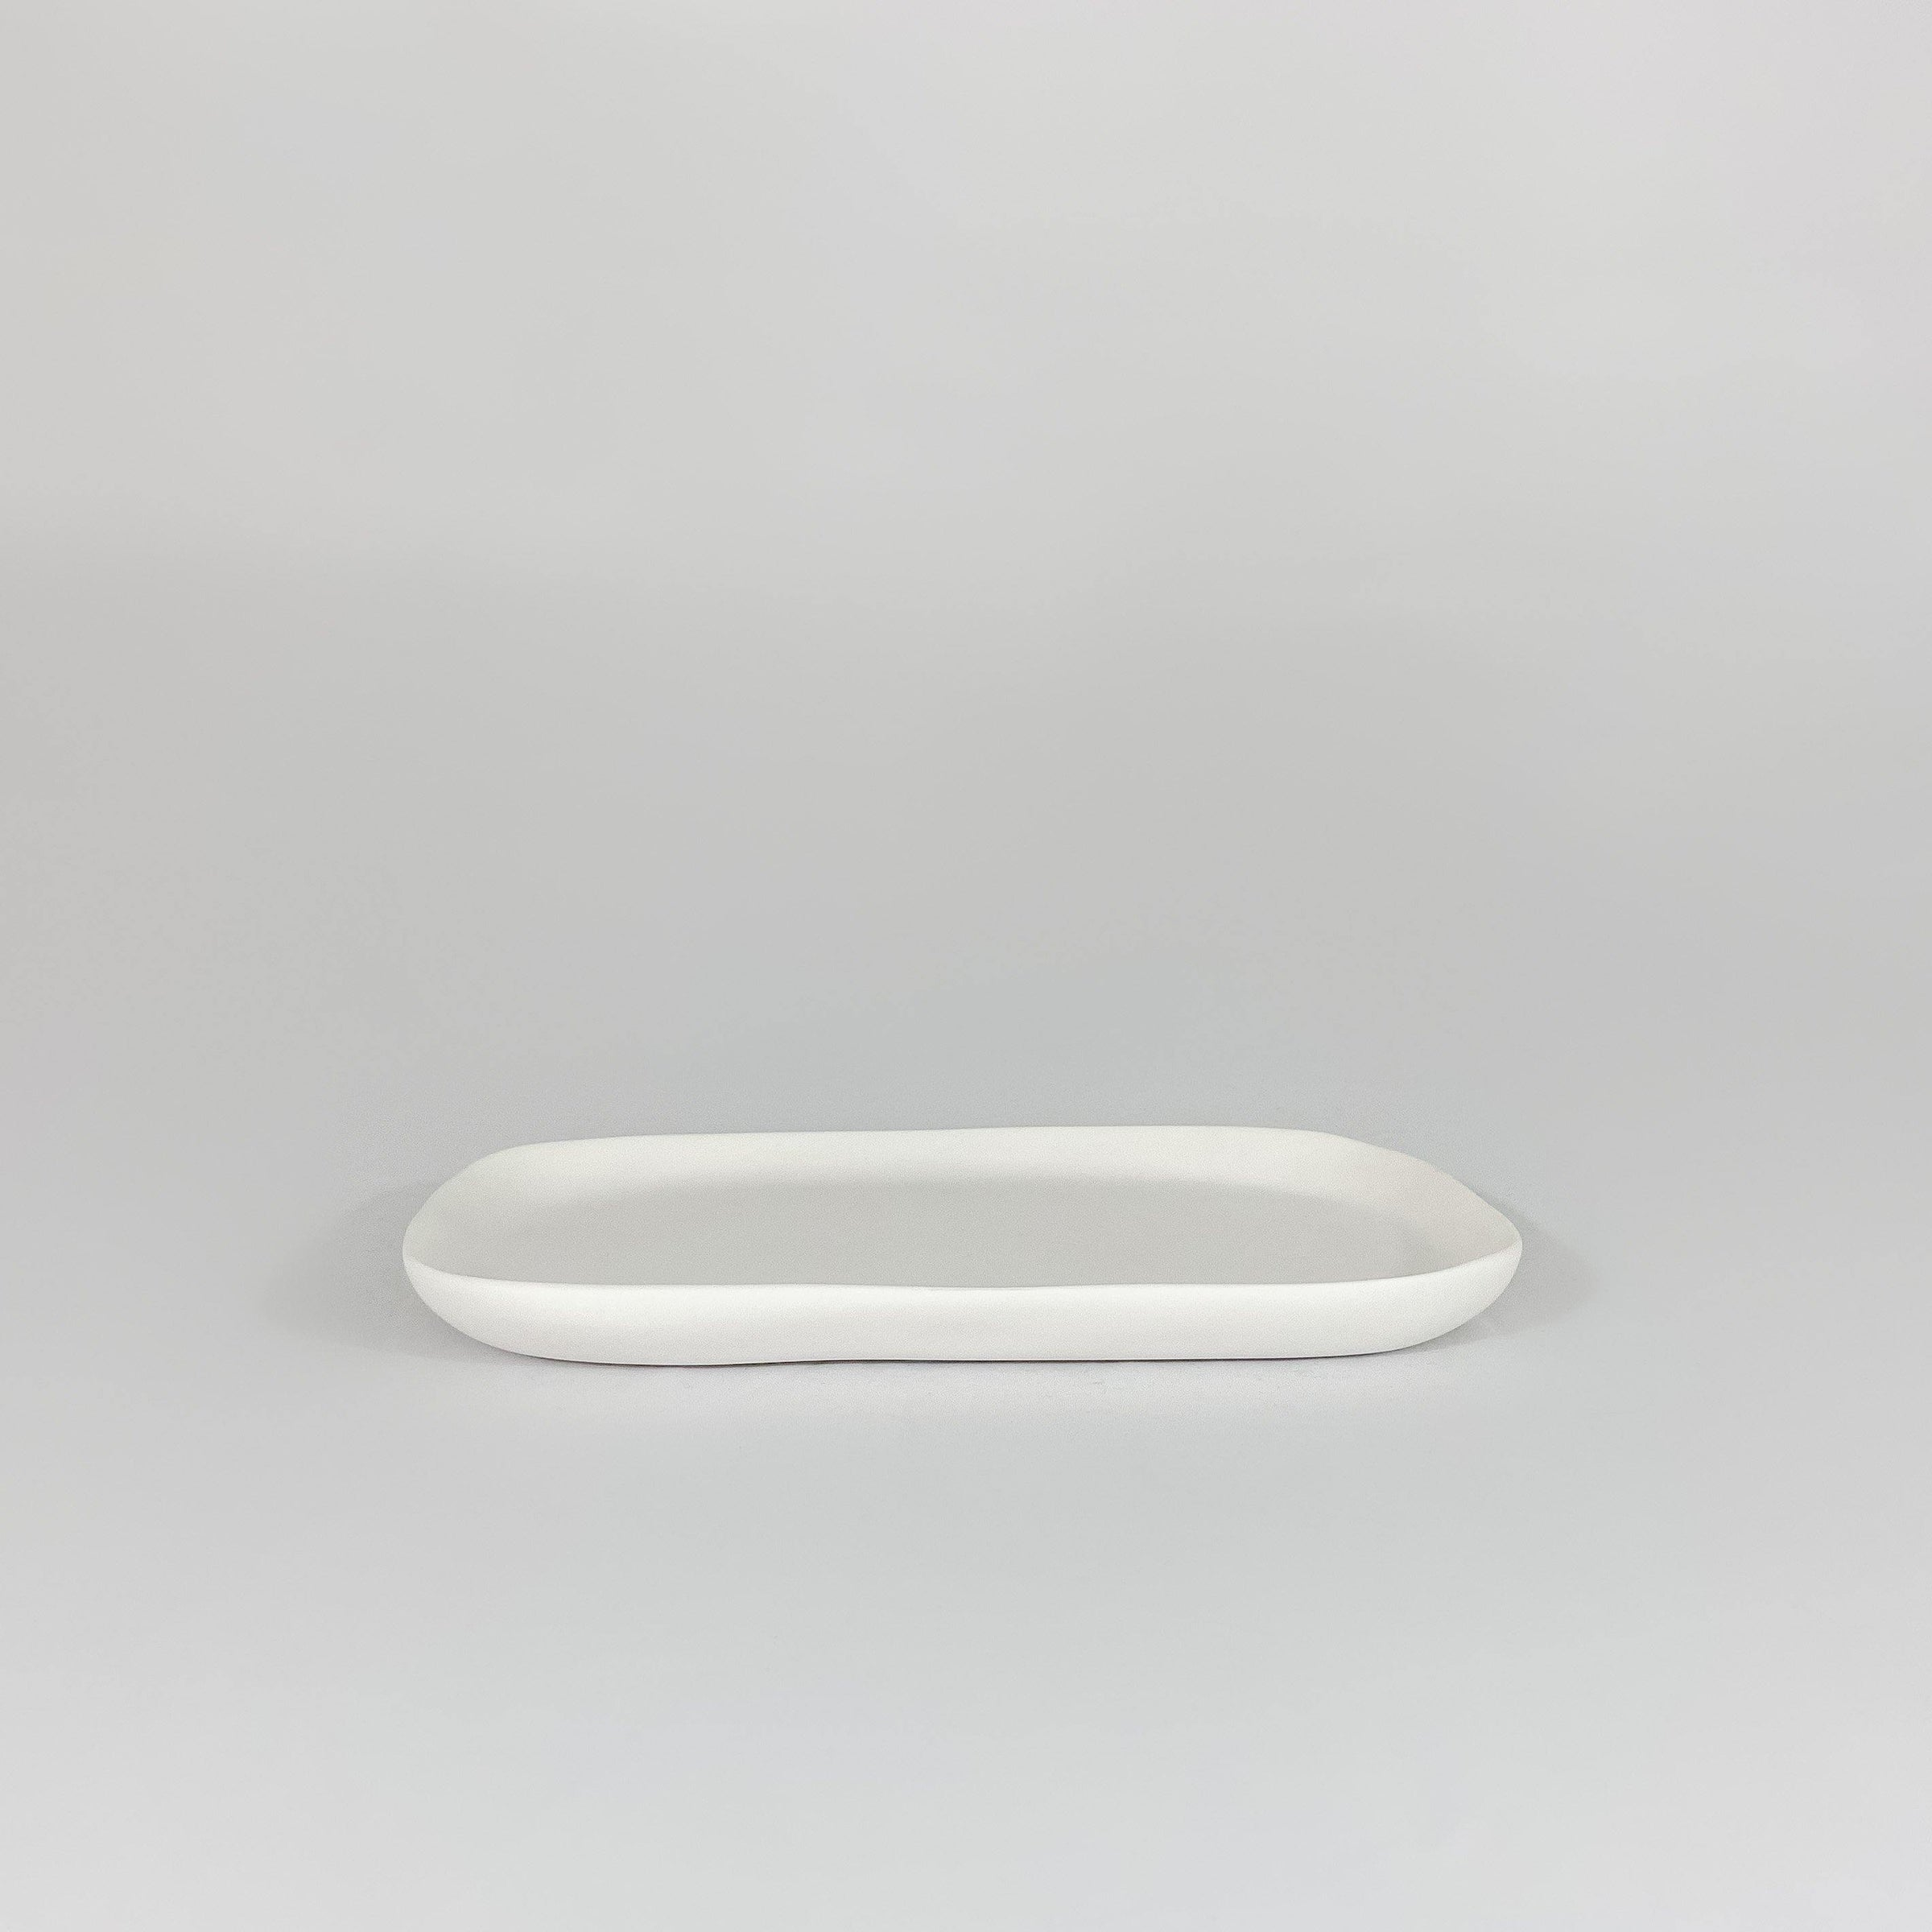 Guest Towel Tray - White